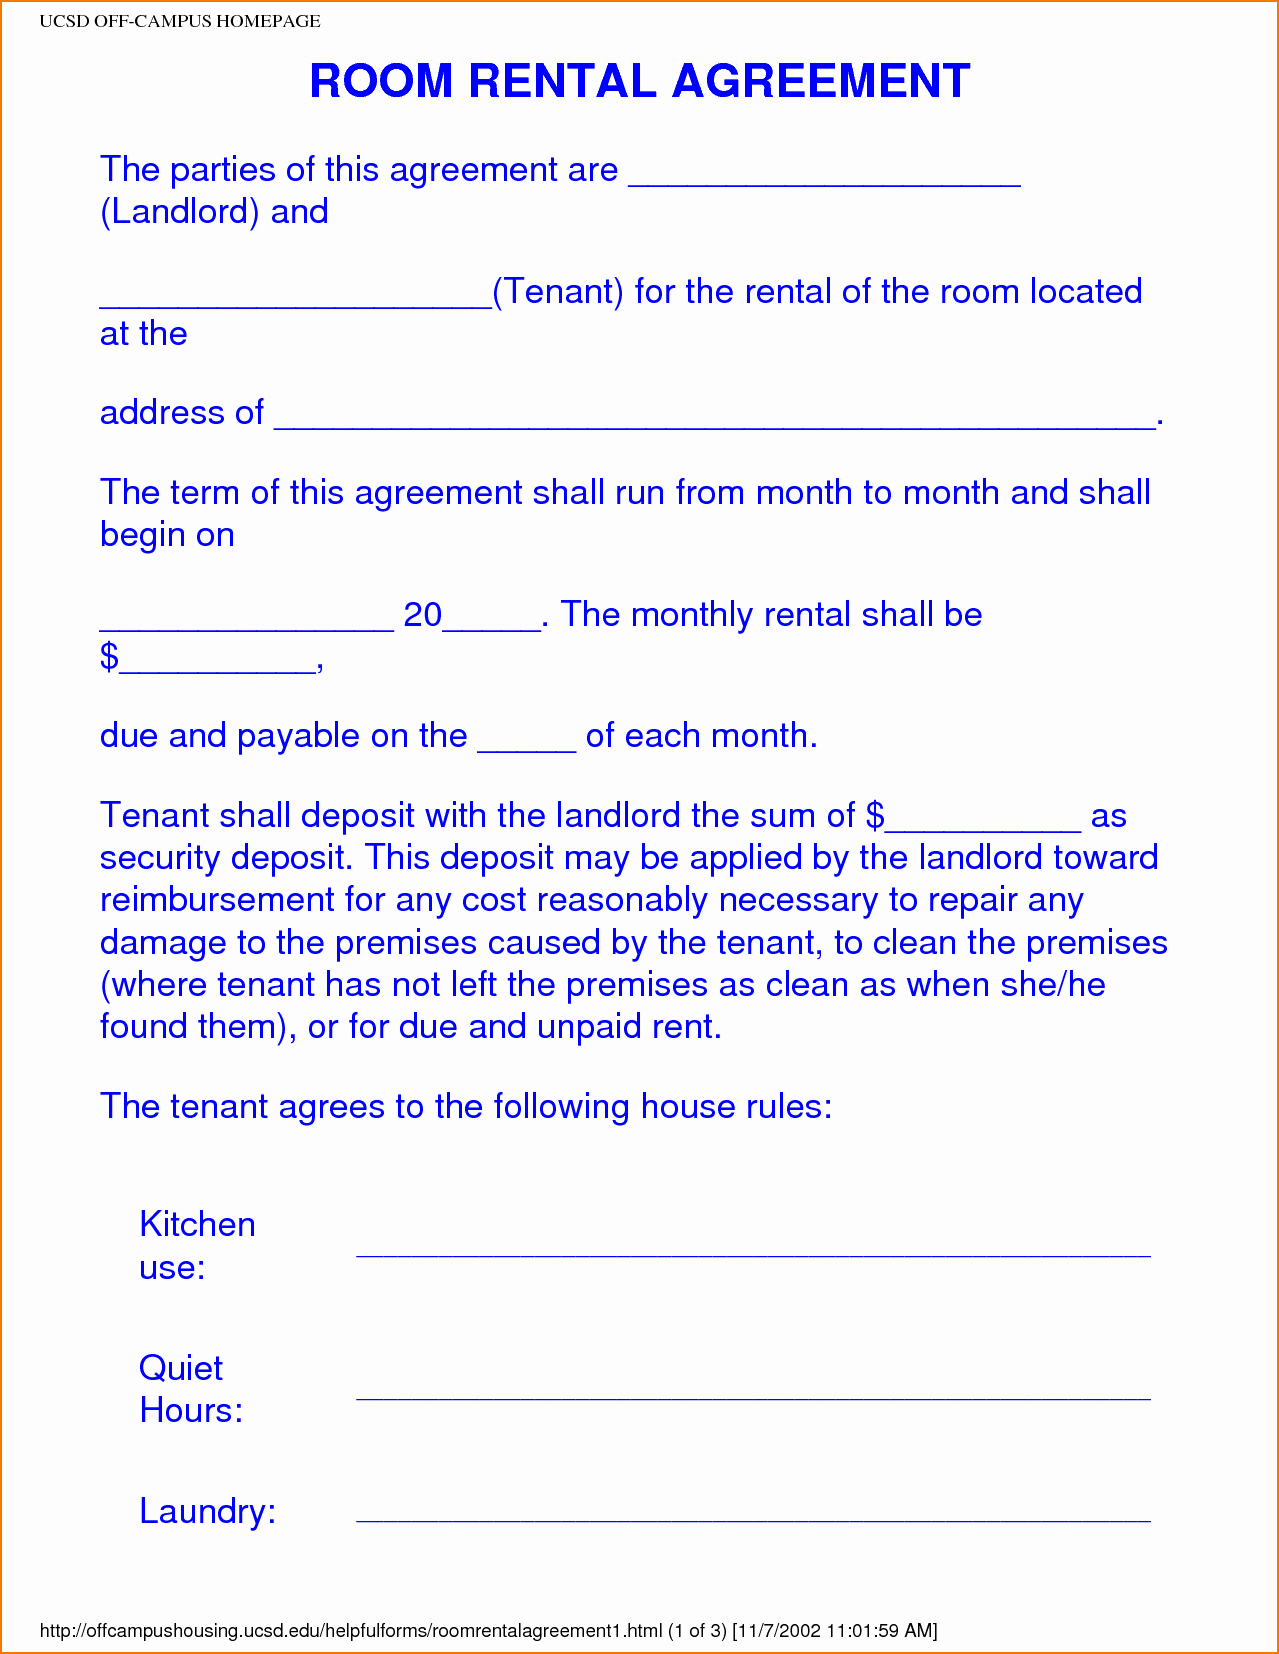 Room Rental Agreement Pdf Beautiful 6 Sample Room Rental Agreement